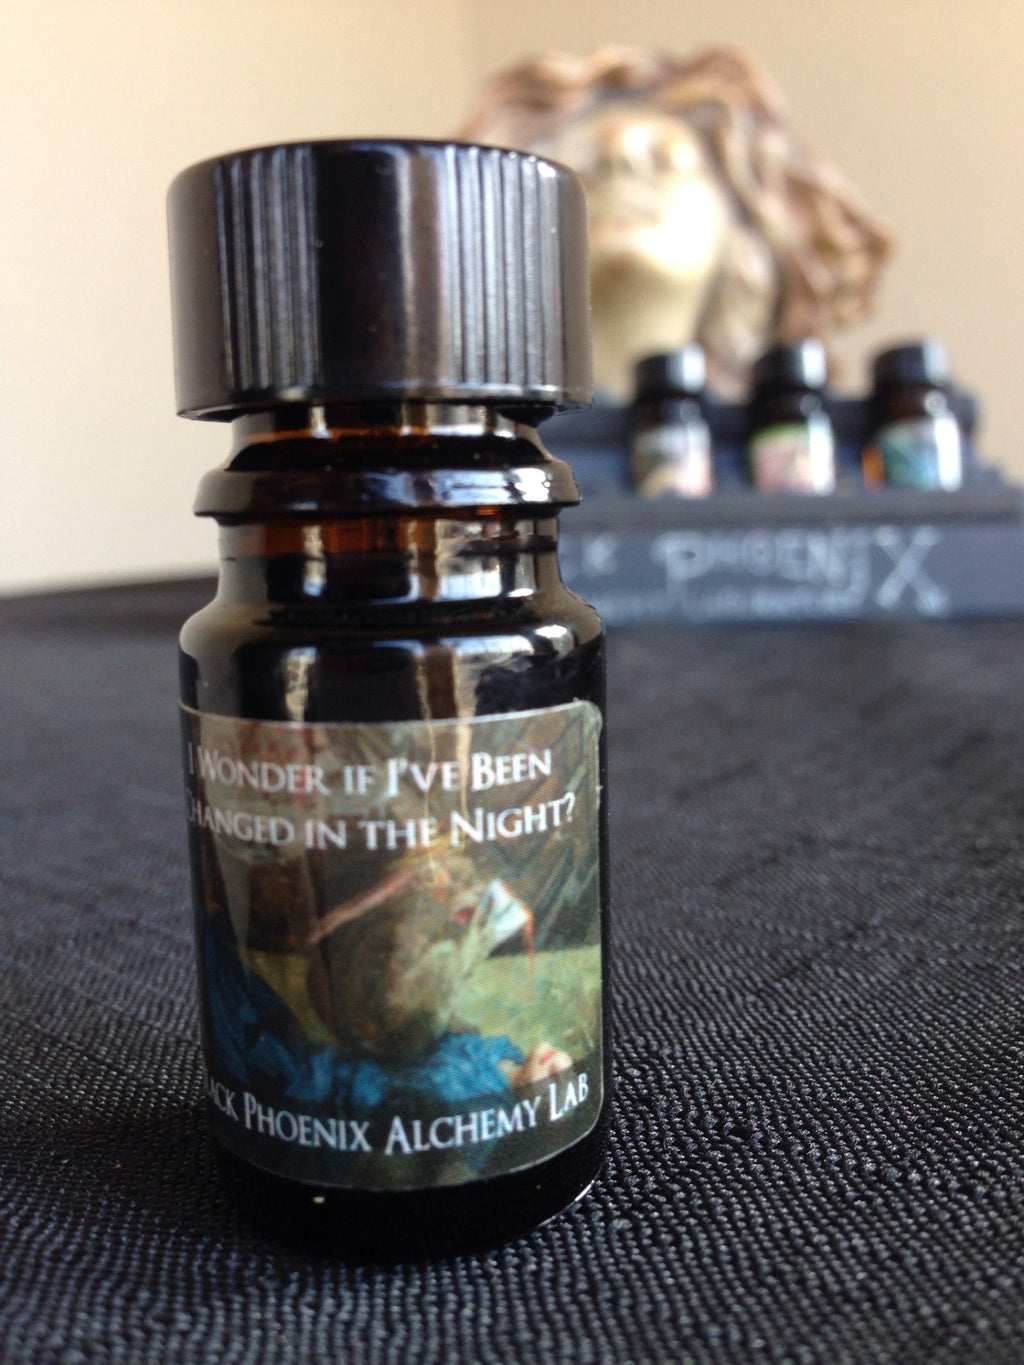 """I Wonder If I've Been Changed In The Night"" LIMITED EDITION scented oil from Black Phoenix Alchemy Lab"